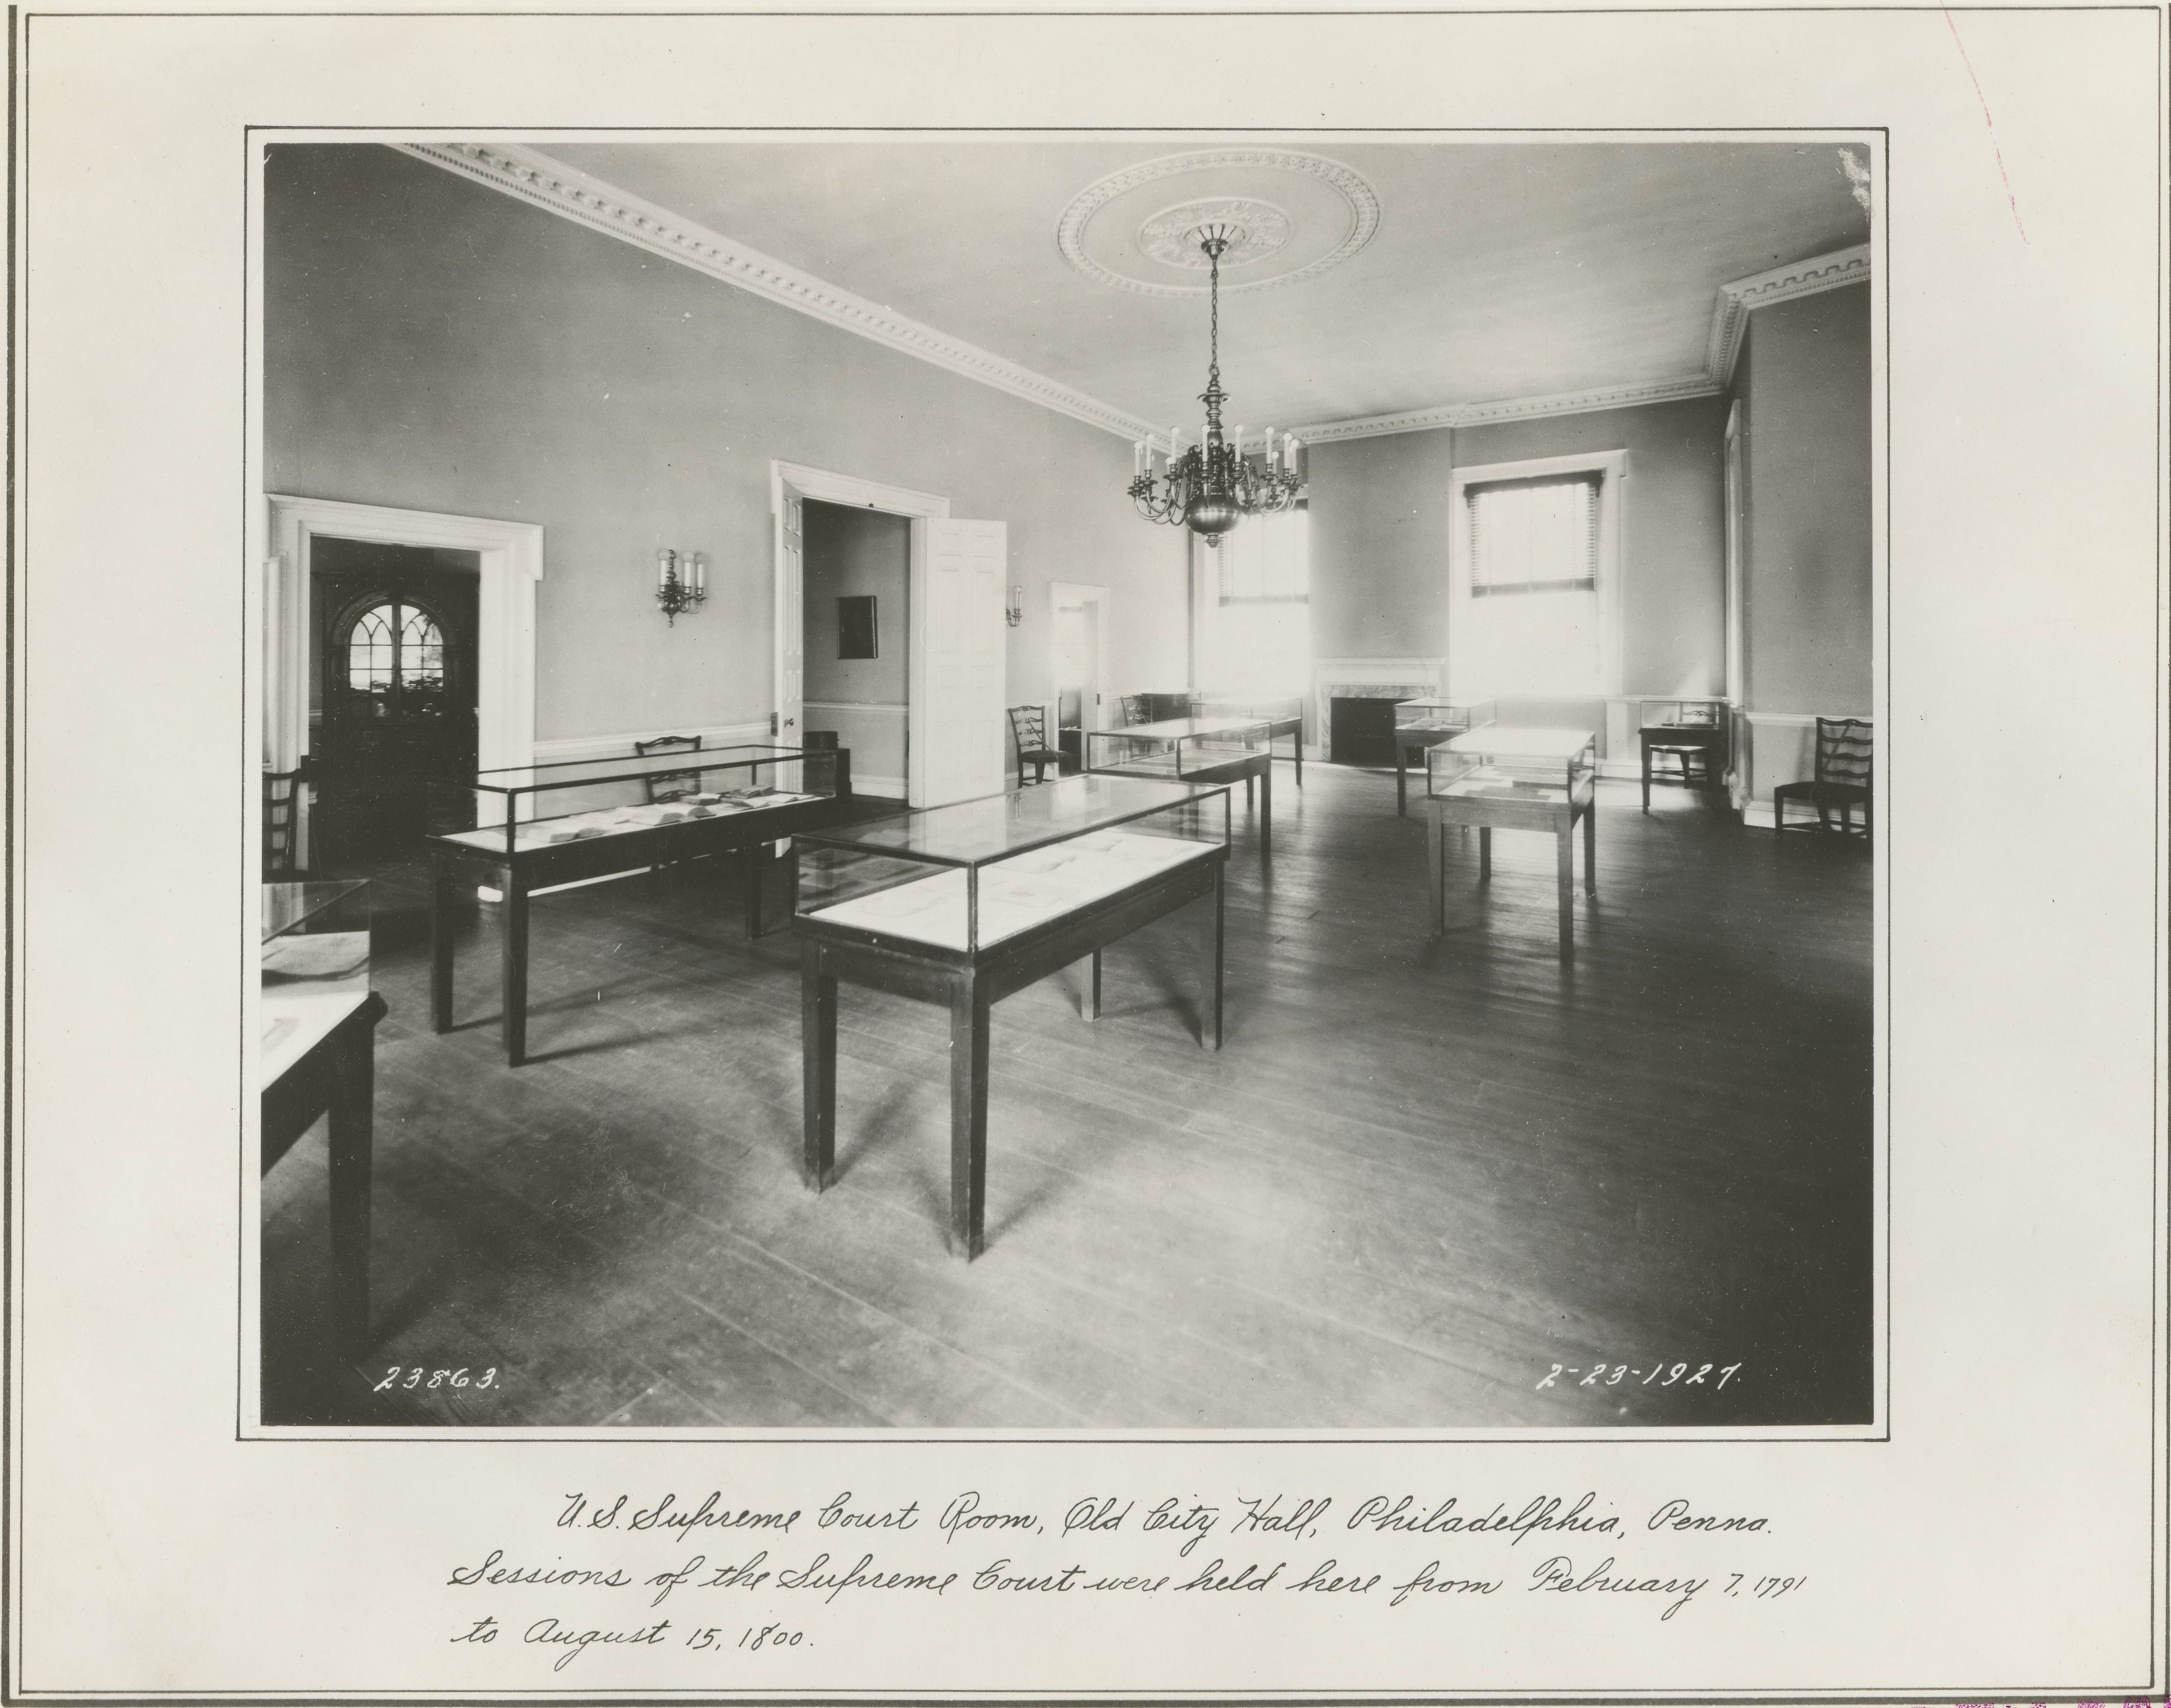 Supreme Court chamber in Philadelphia's Old City Hall in 1927, long before the Bicentennial renovation. Original caption: U.S. Supreme Court Room, Old City Hall, Philadelphia. Sessions of the Supreme Court were held here from February 7, 1791 to August 15, 1800. (Local identifier: 30-N-40-36)